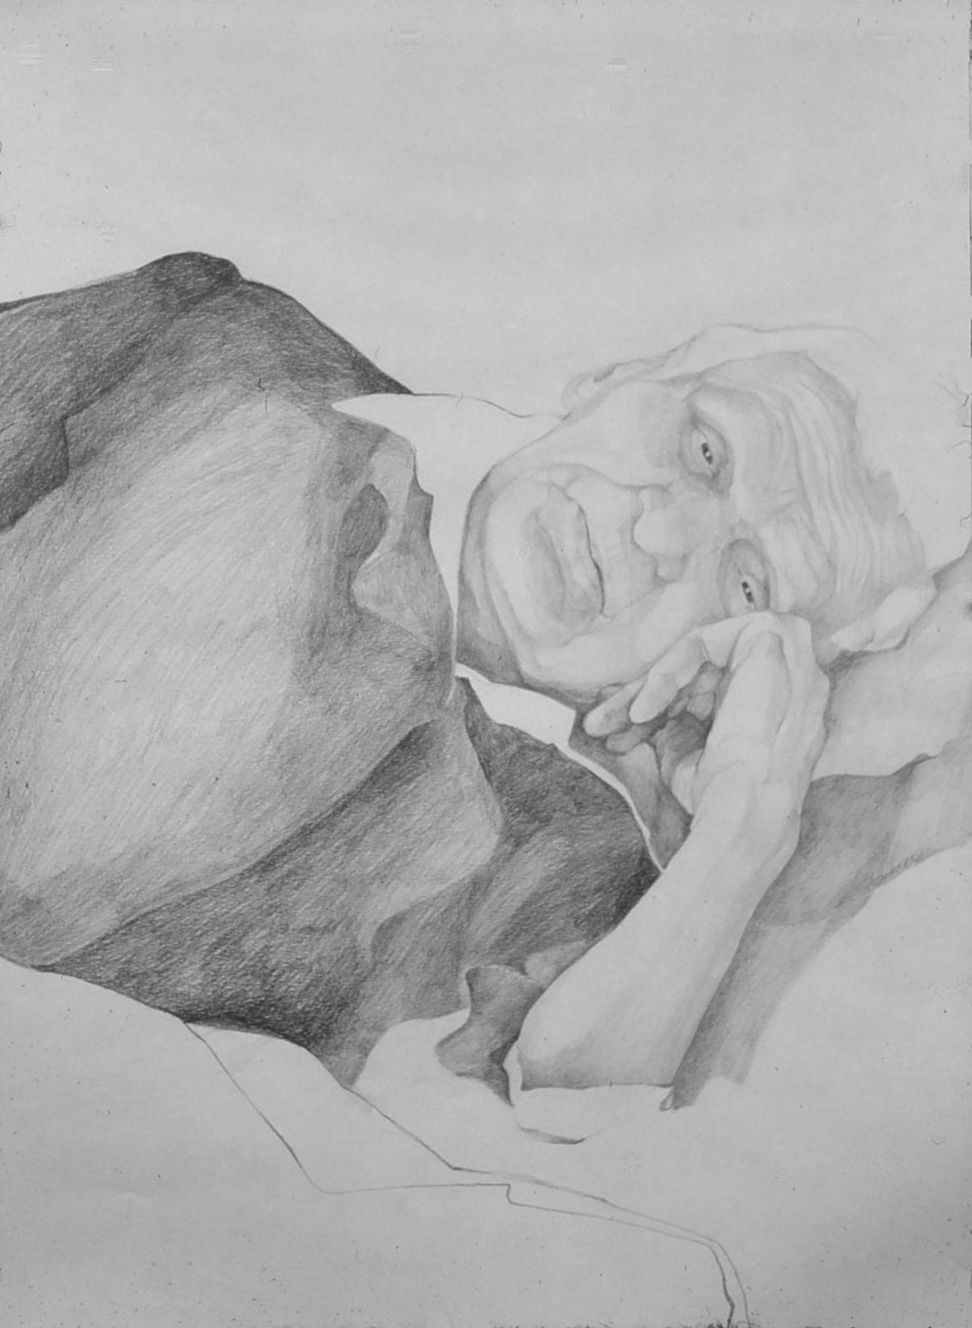 5dx(0) - The Passage- pencil on paper, 24x18, 1978.jpg